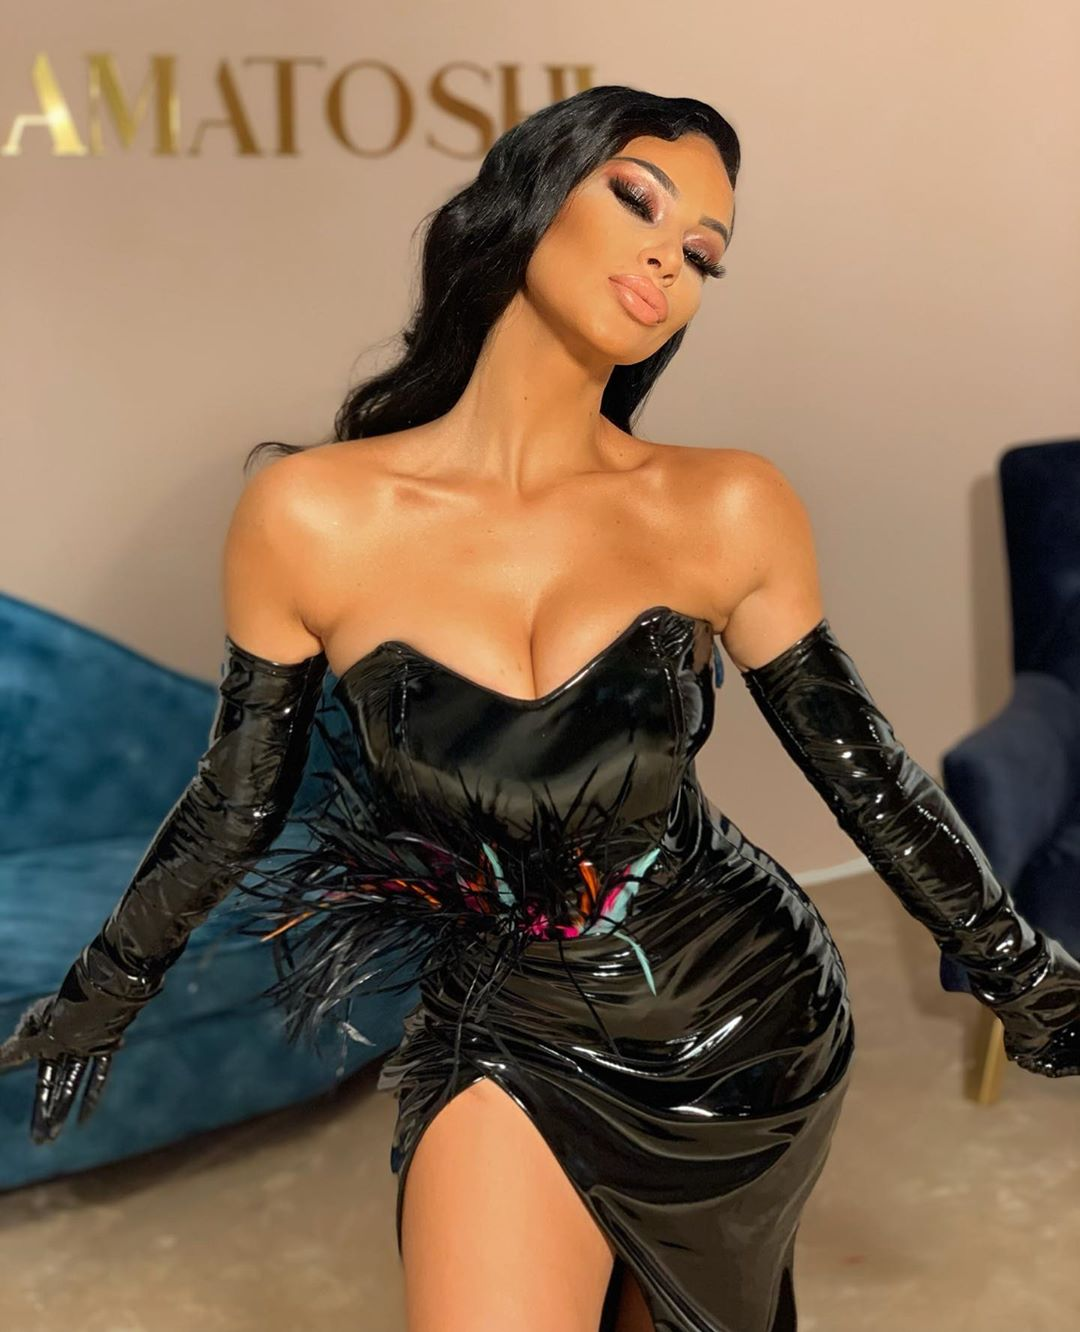 Black Latex & Feathers - Gloved Hands